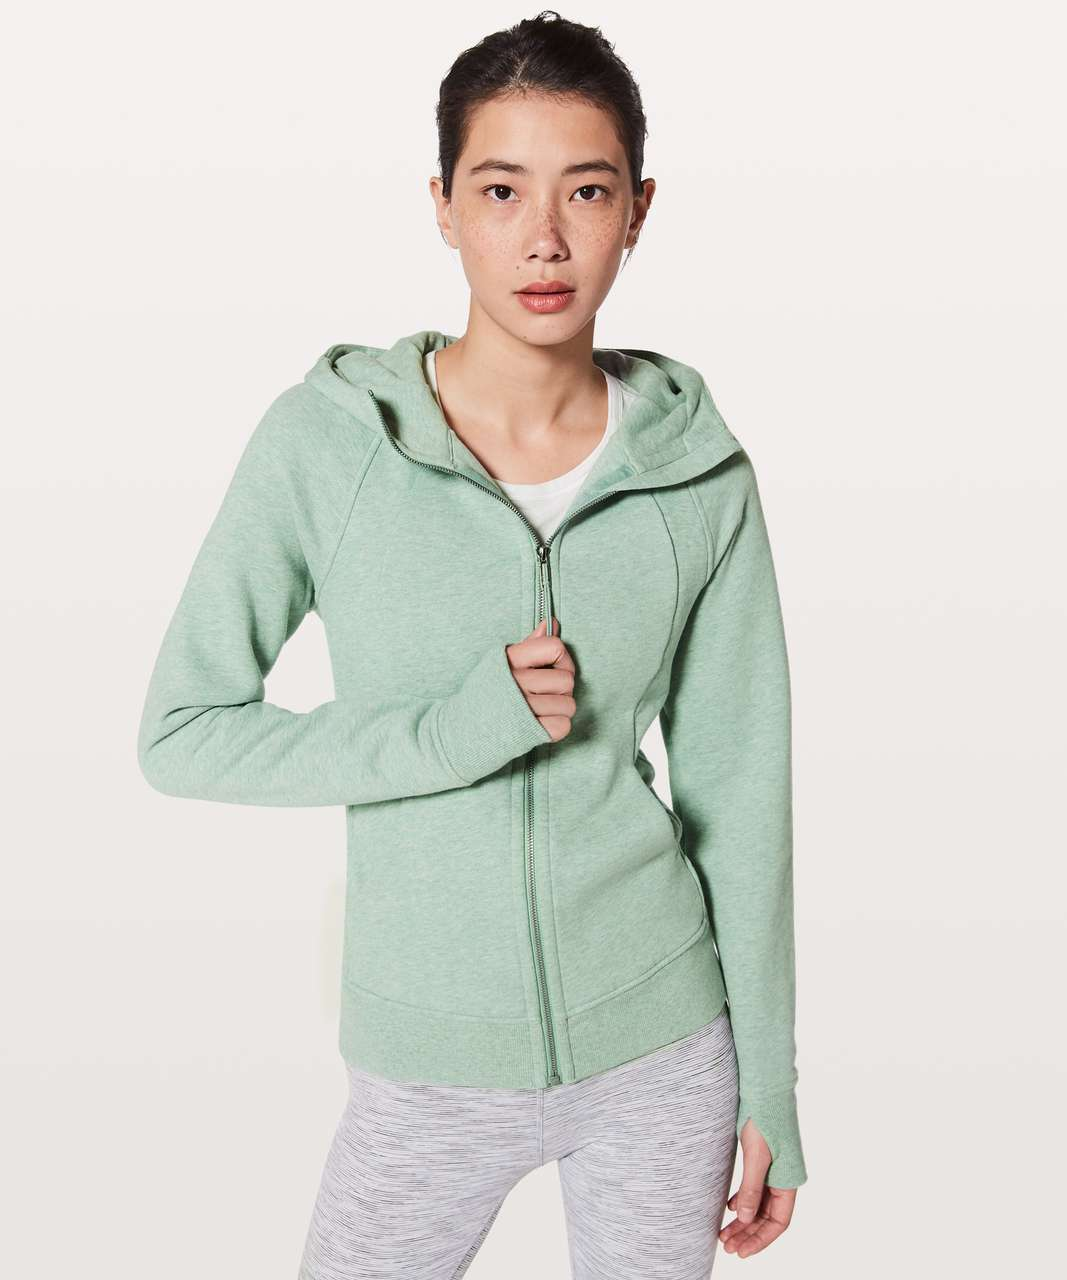 Lululemon Scuba Hoodie *Light Cotton Fleece - Heathered River Mist